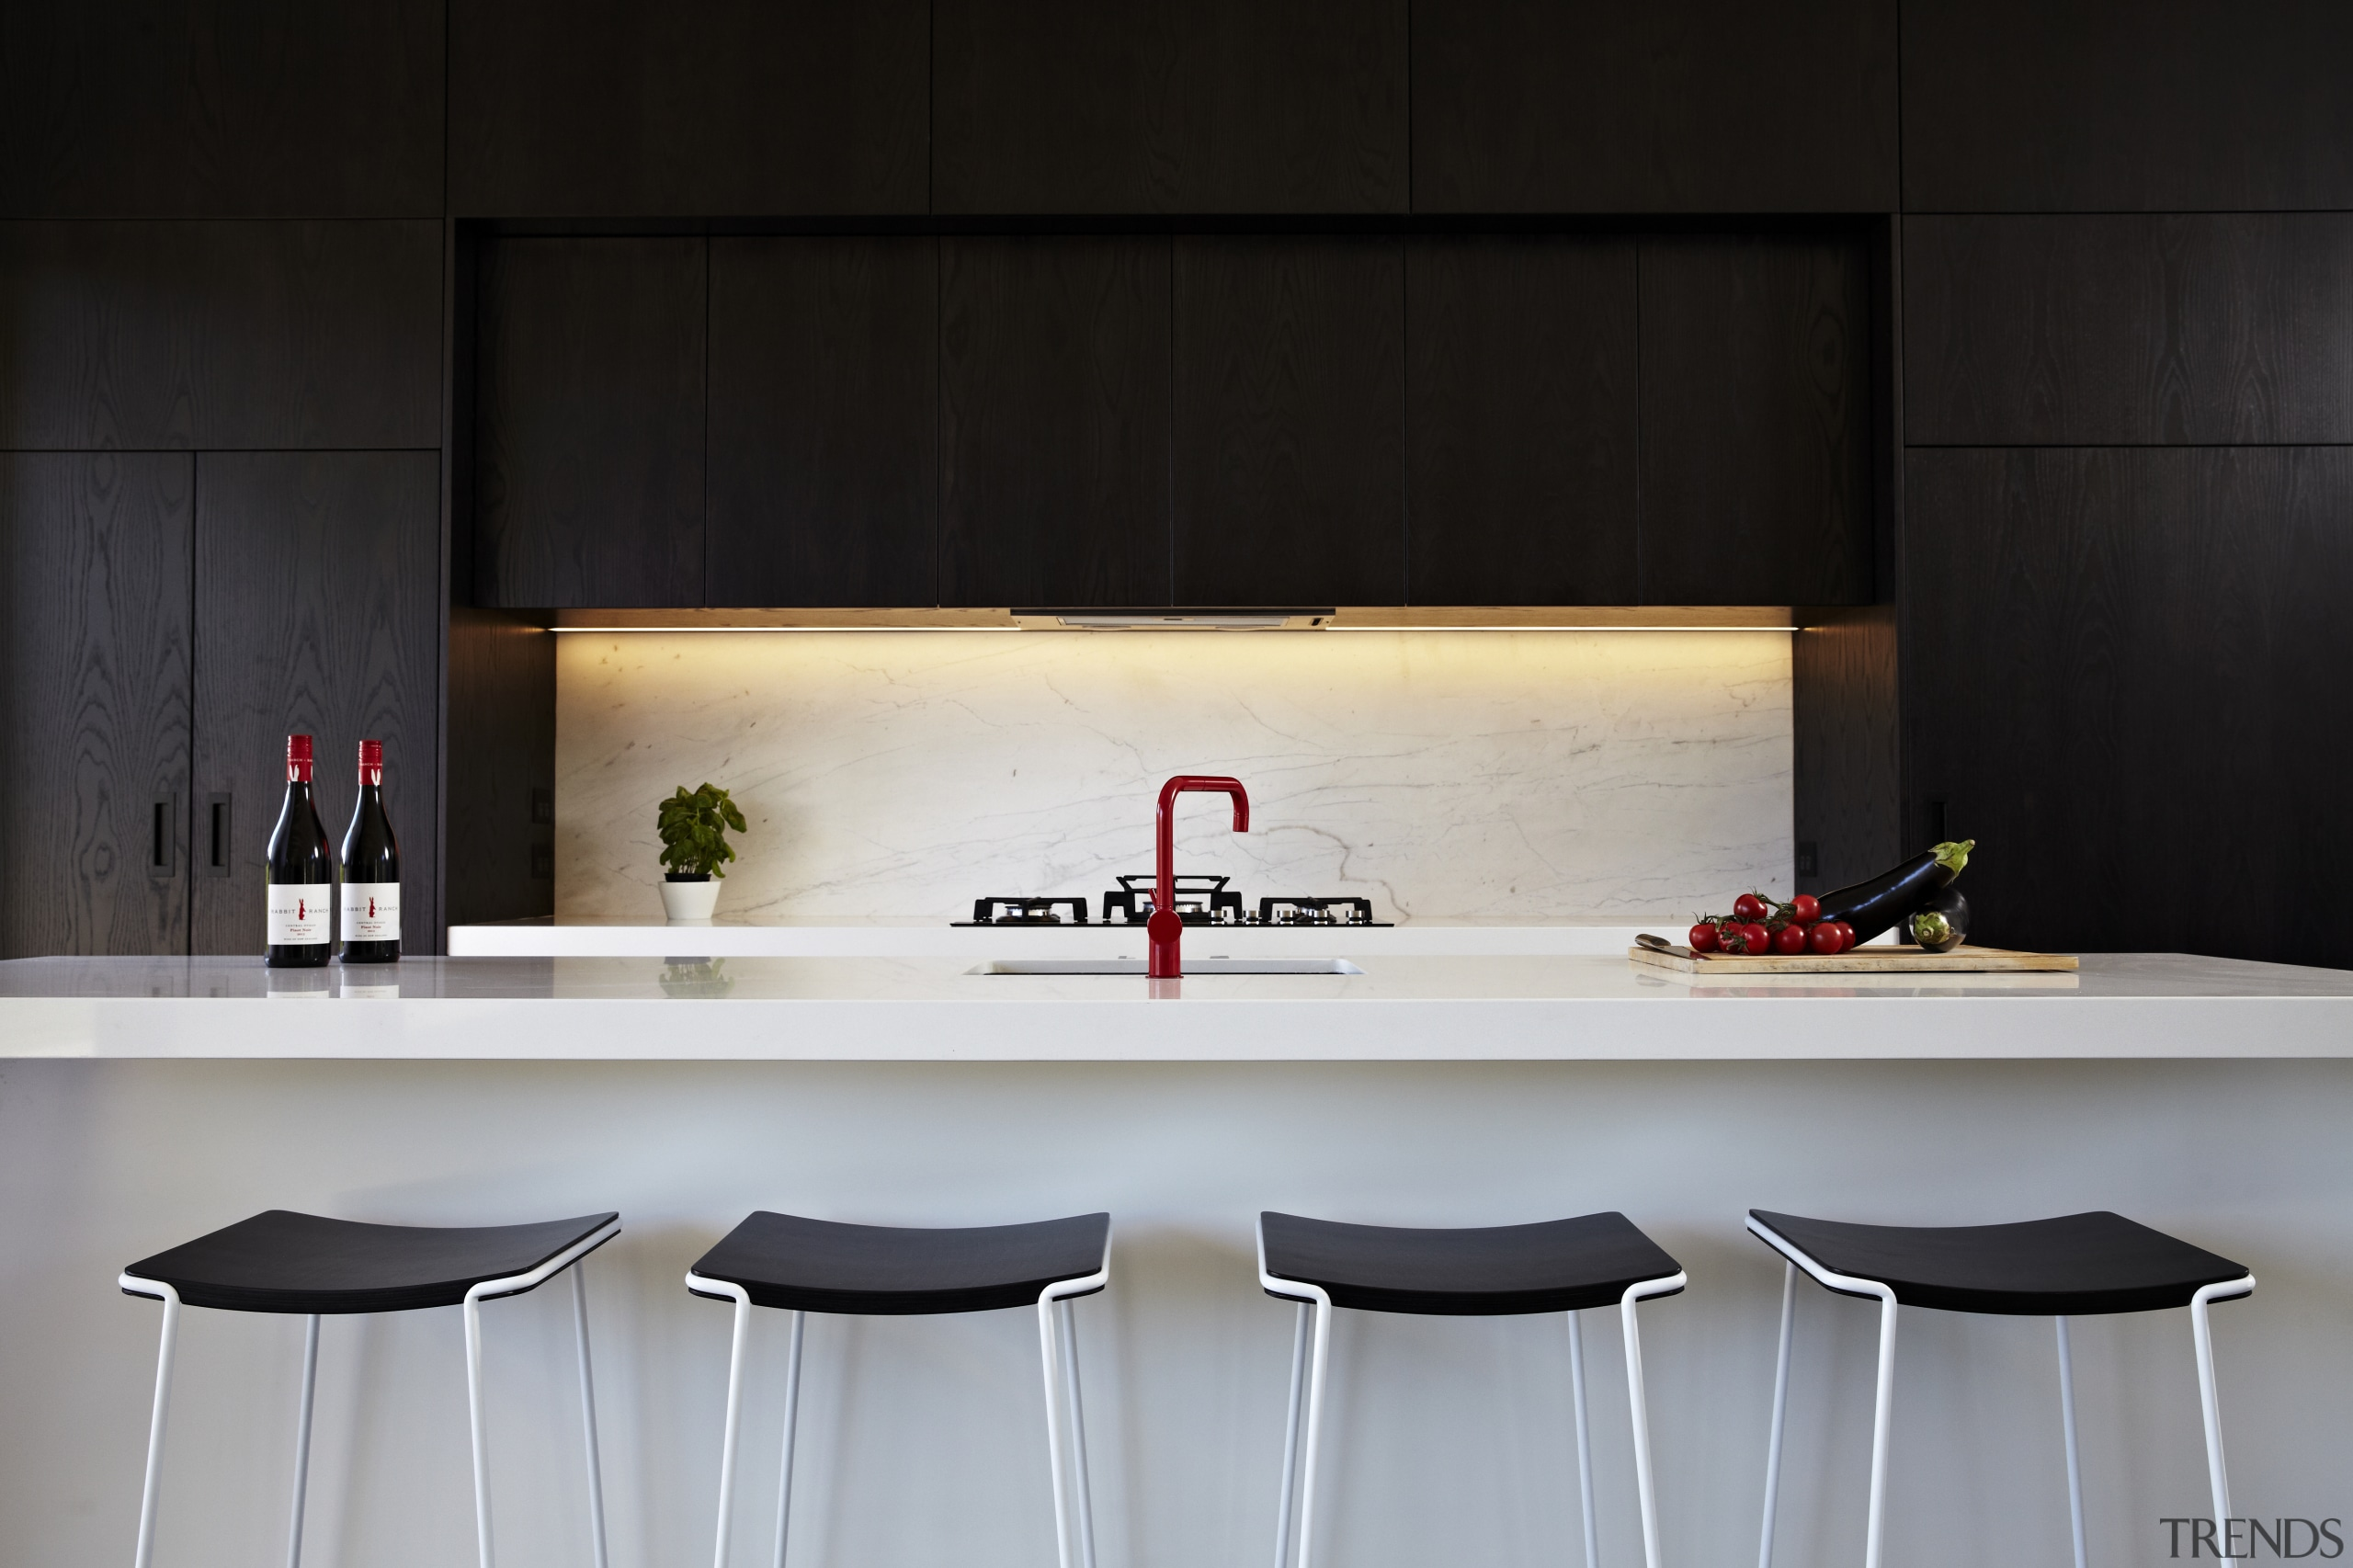 Architect Evelyn McNamara specified dark-stained American oak and countertop, furniture, interior design, kitchen, table, black, gray